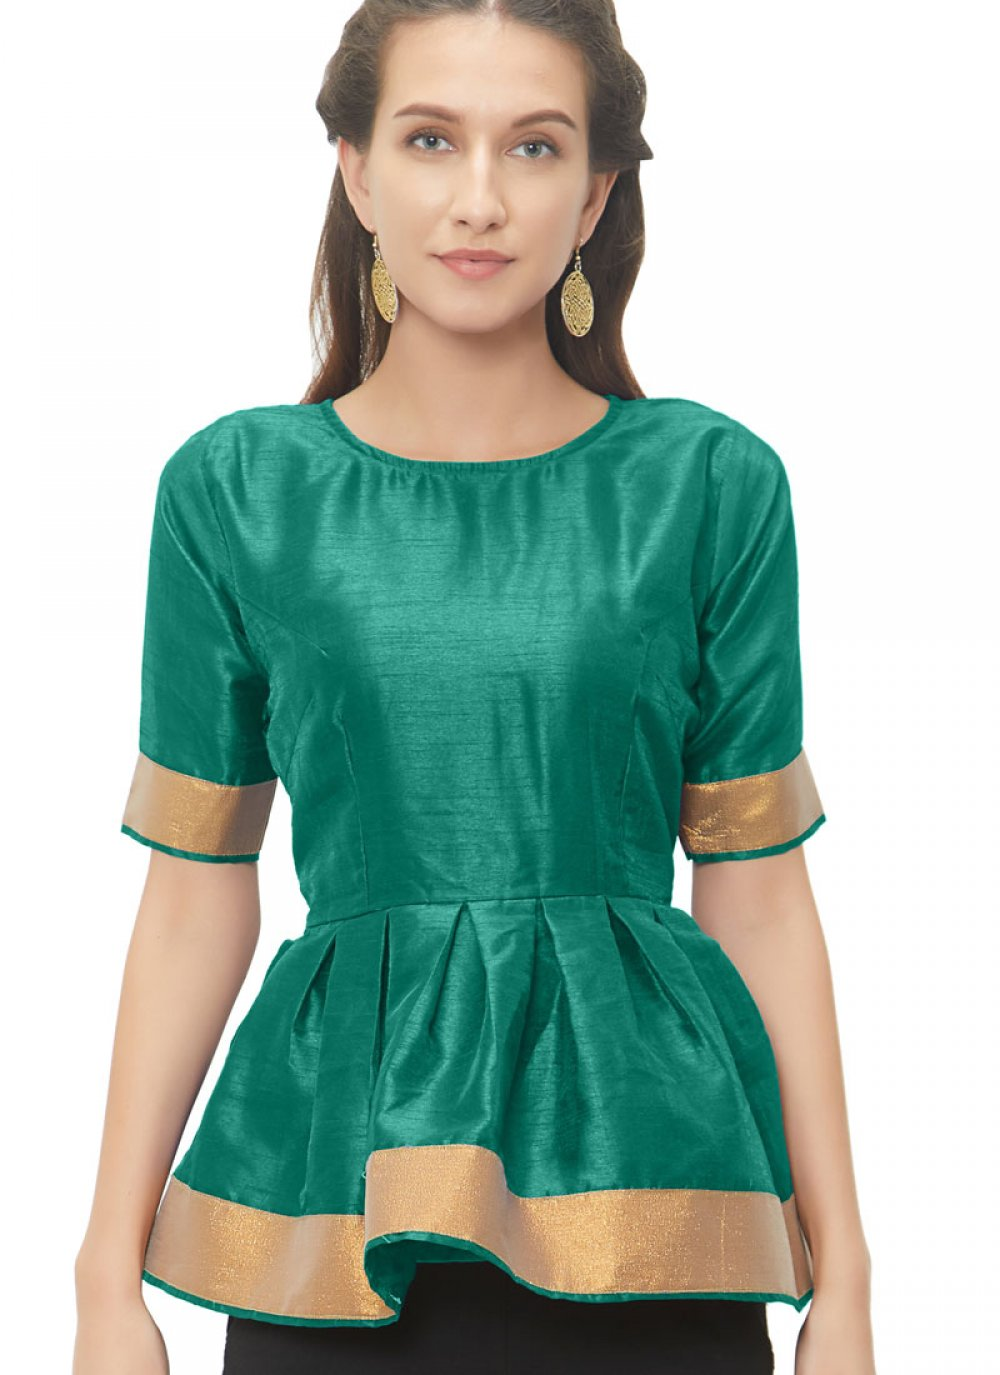 Prepossessing Teal Color Readymade Blouse